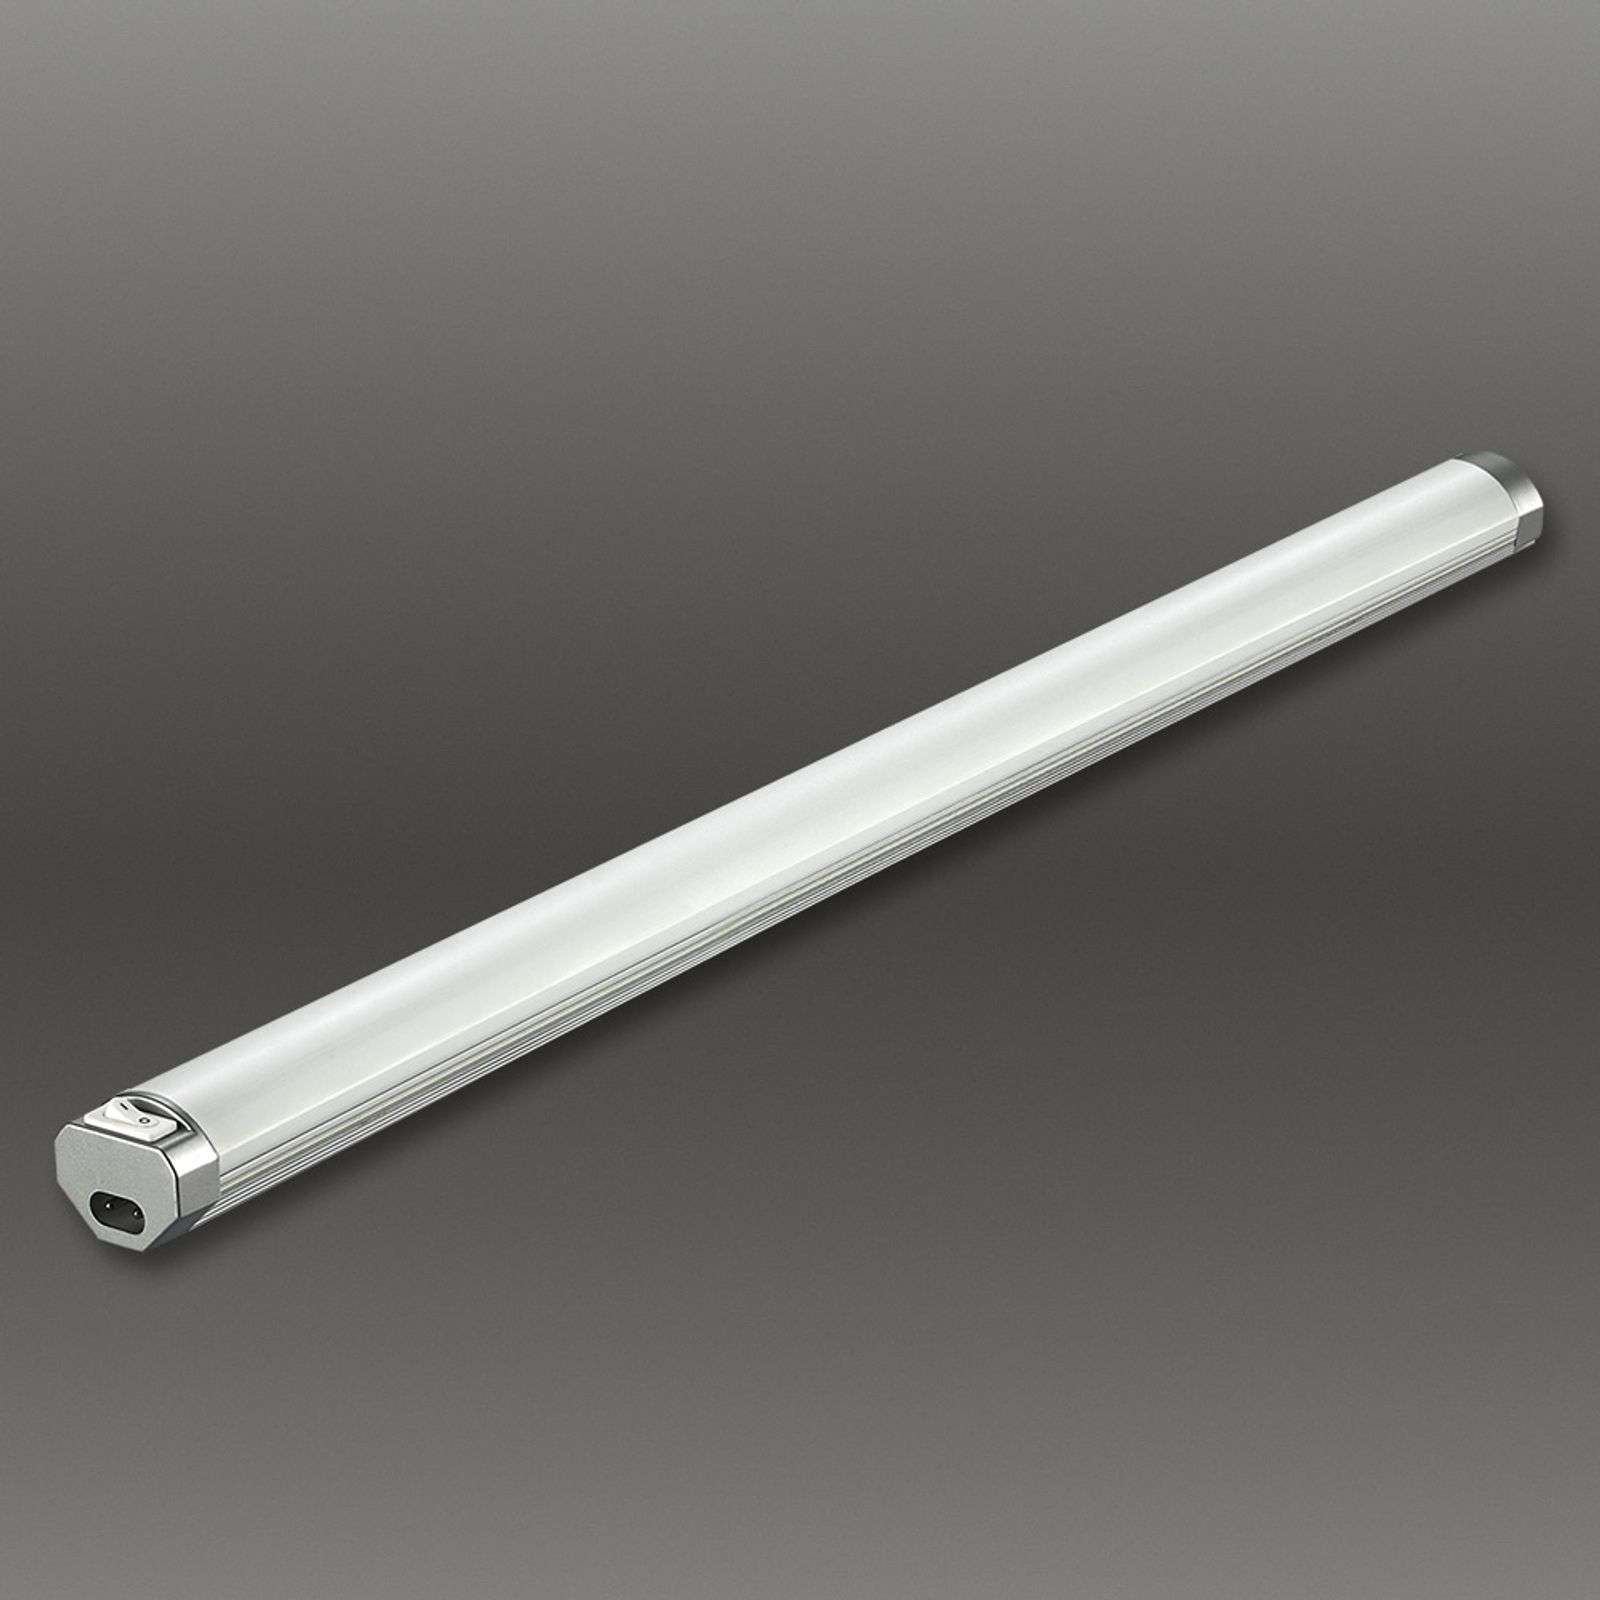 lampada da incasso High-Power-LED 954, 10W, 56,5cm